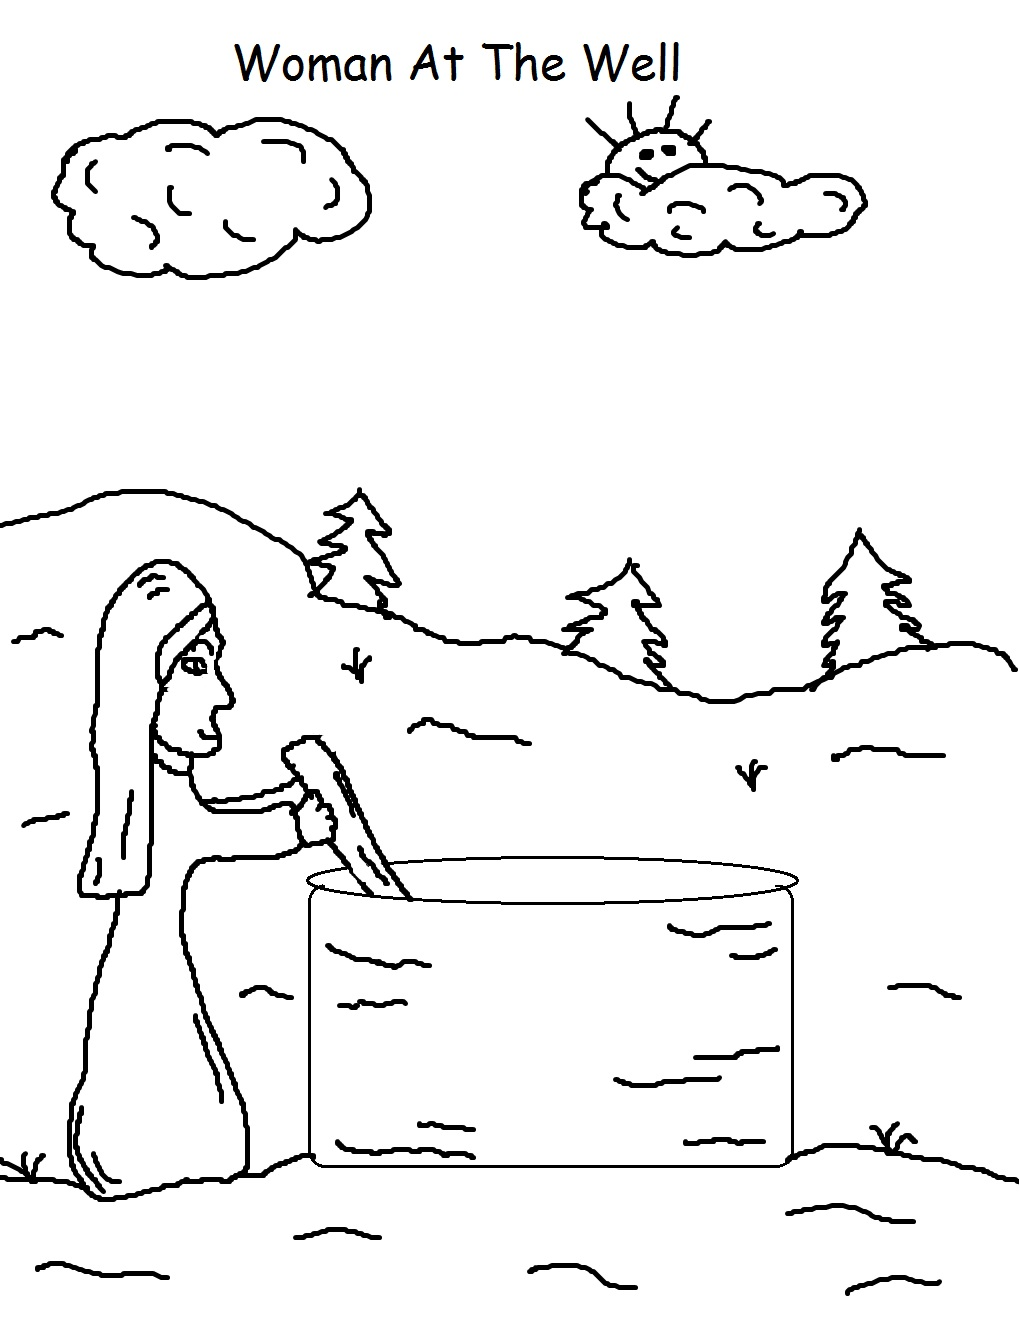 Printable coloring pages woman at the well - Woman At The Well Coloring Page